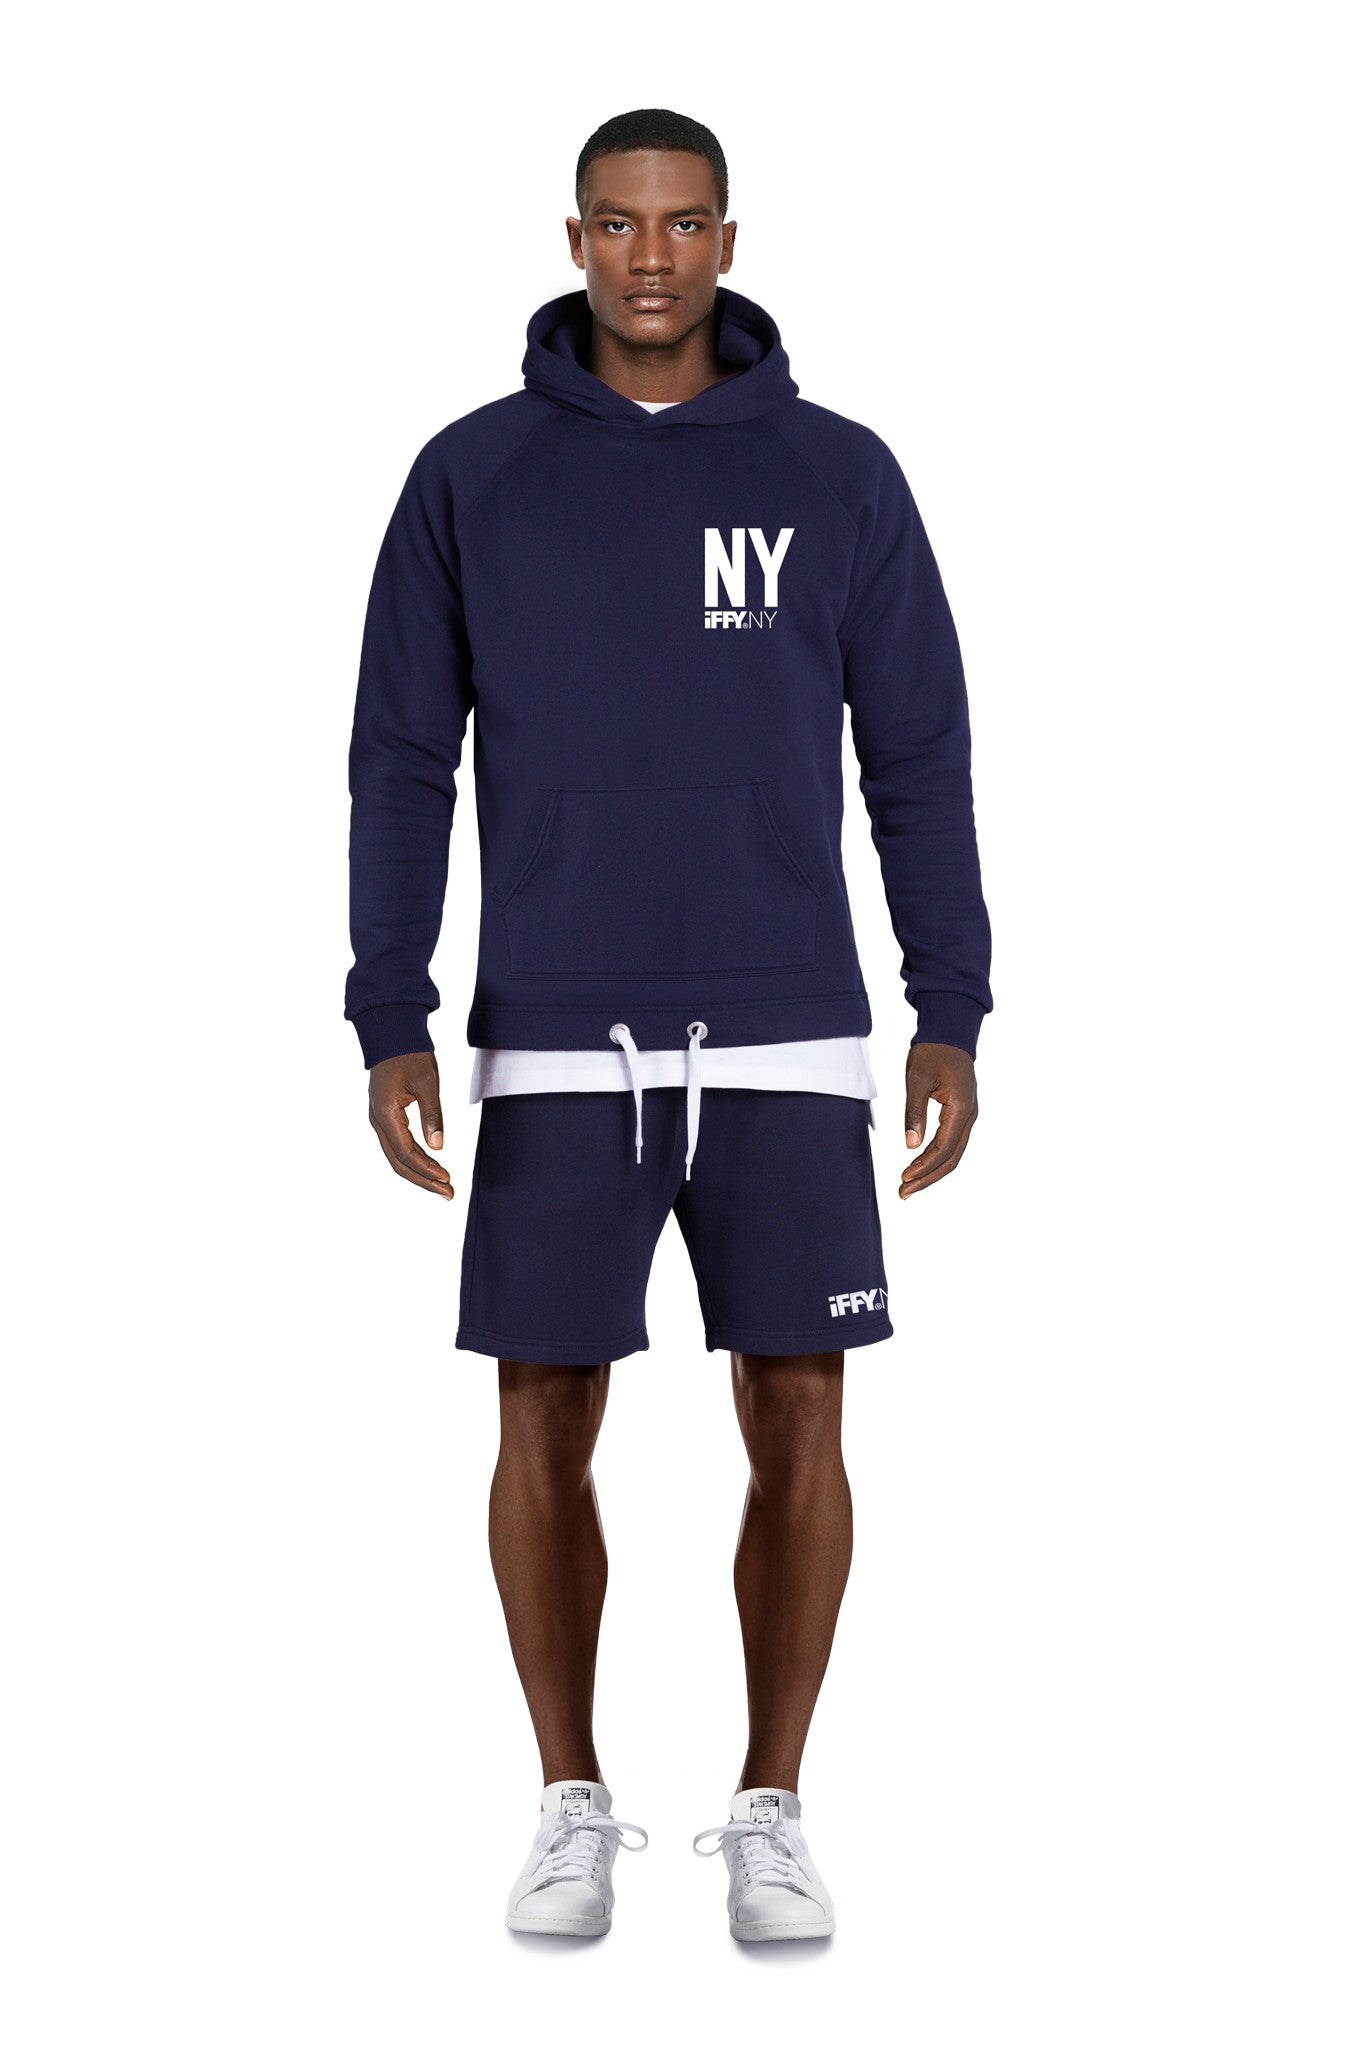 IFFY NY Cooper hoodie in navy blue